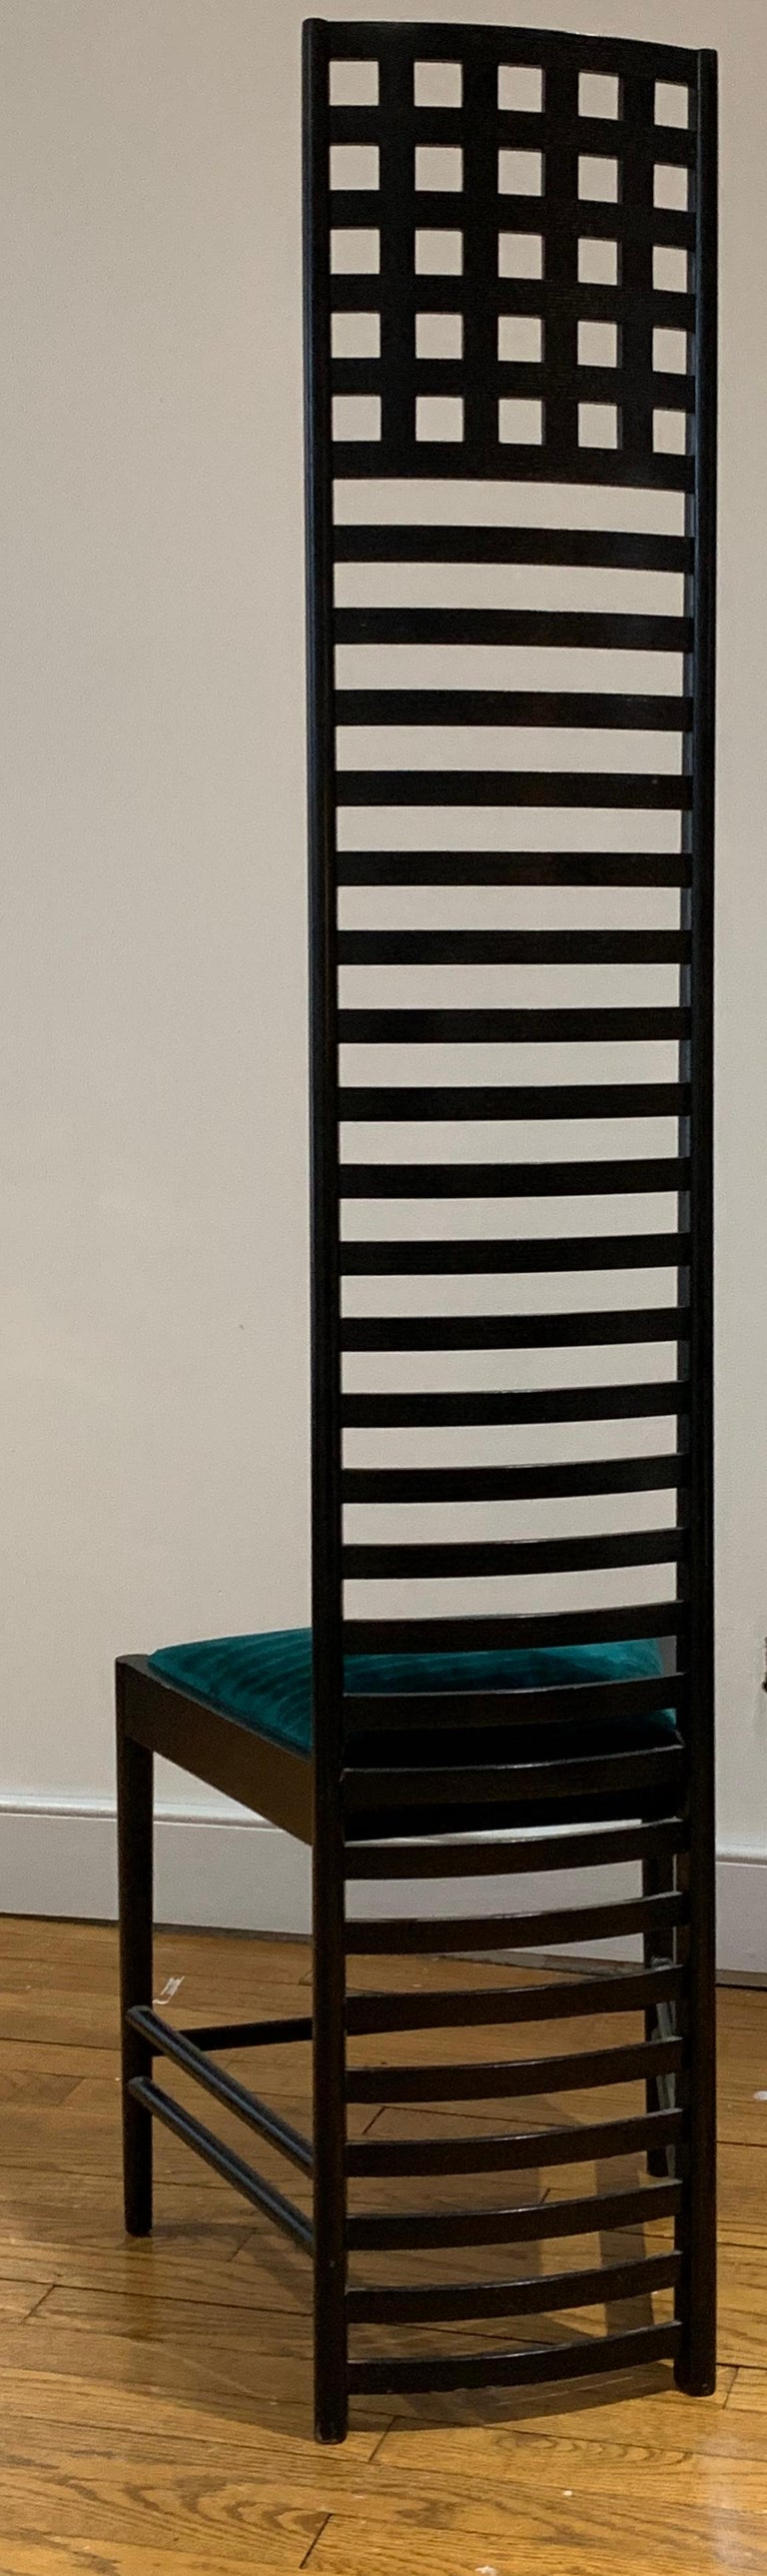 Chales Rennie Mackintosh Cassina Silk Velvet 292 Hill House 1 Chair Italy 1960s In Good Condition In Brooklyn, NY